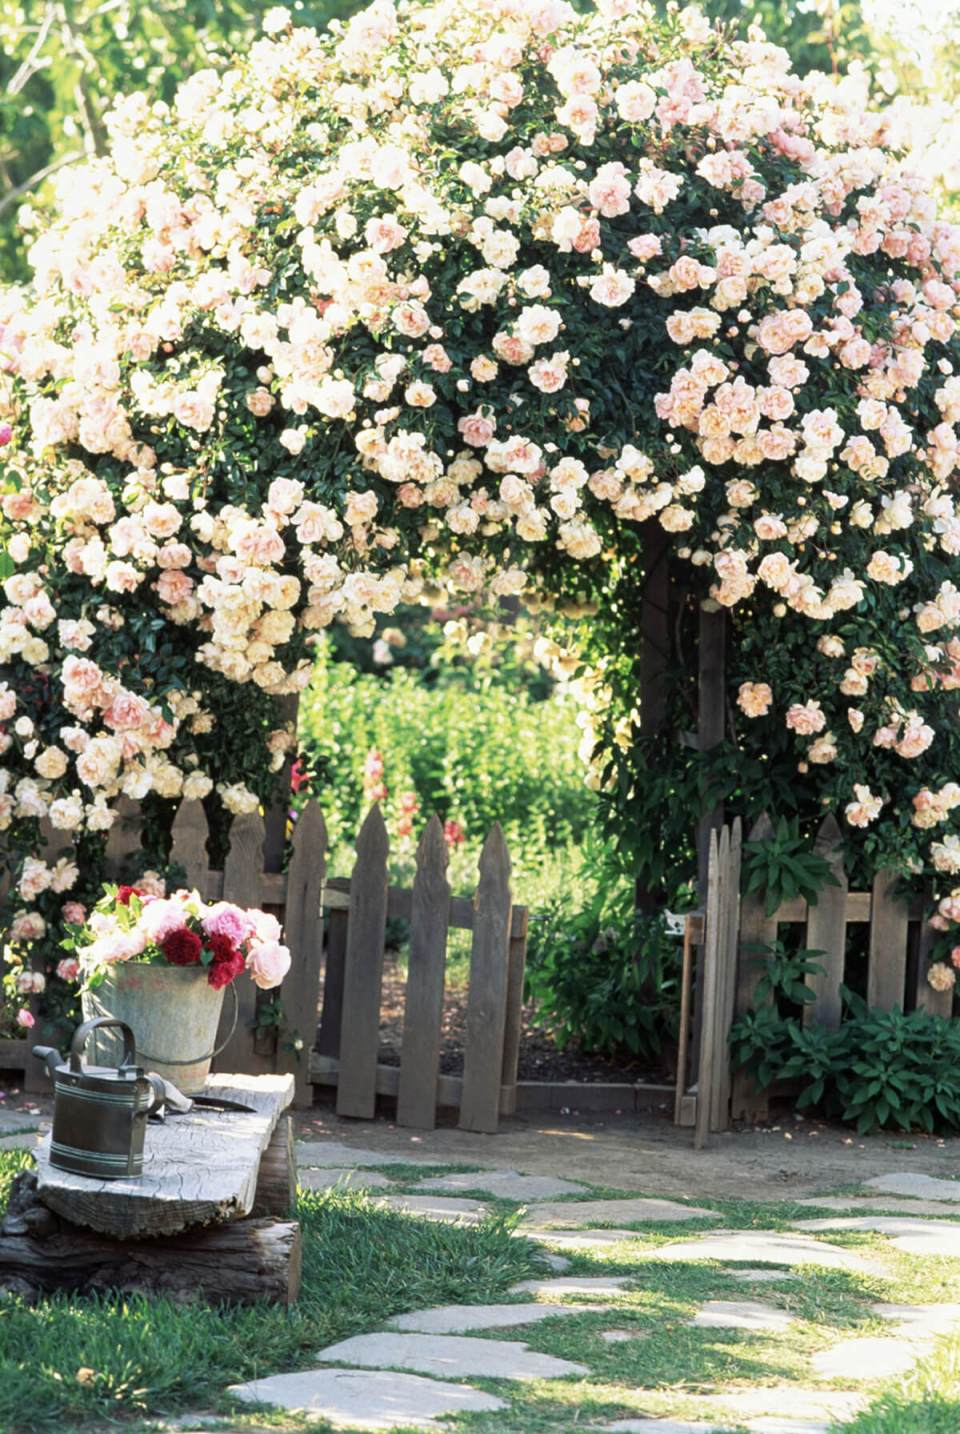 Garden Arch Overflowing with Roses